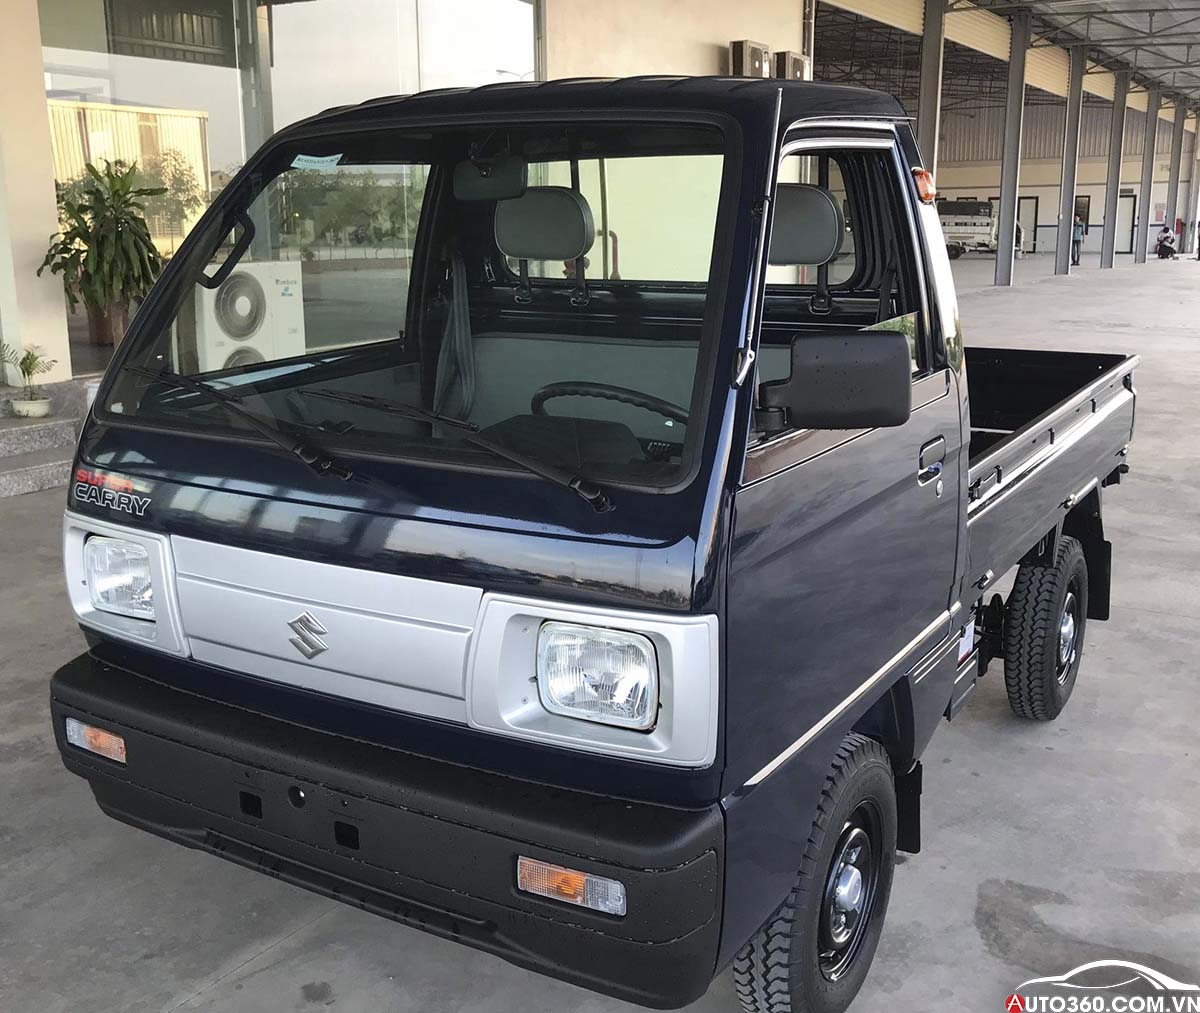 Suzuki-cary-truck-long-an